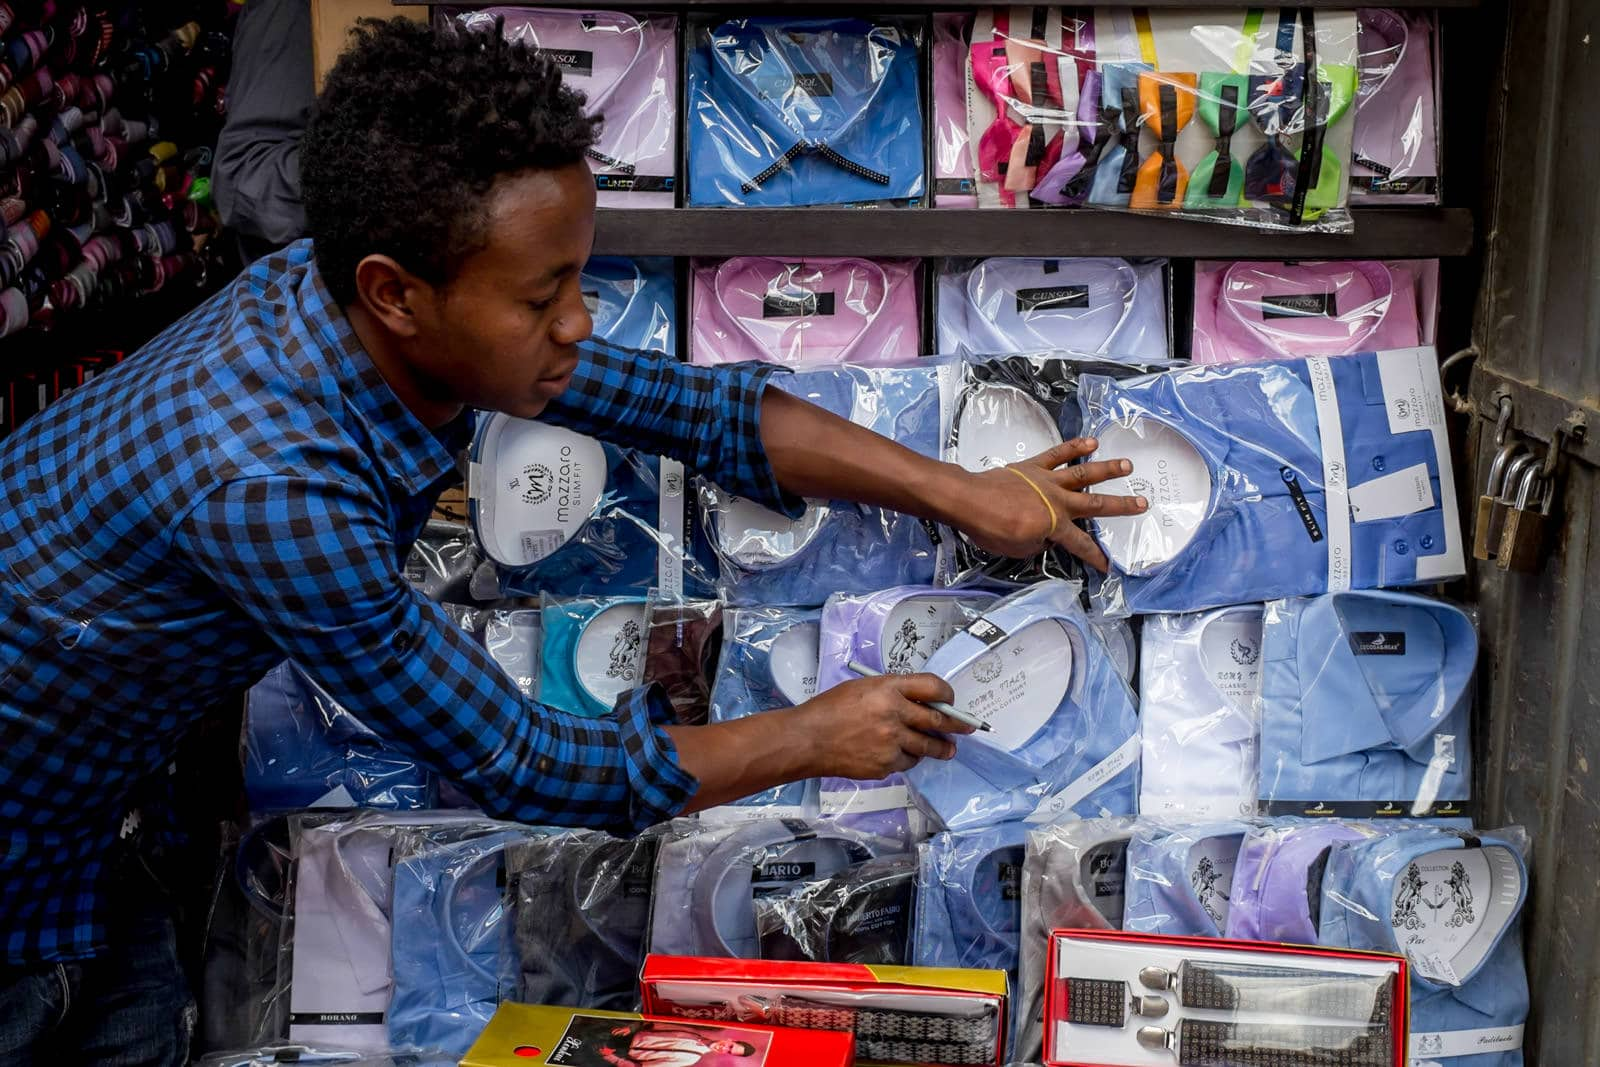 man selling shirts in Addis Merkato market in Ethiopia